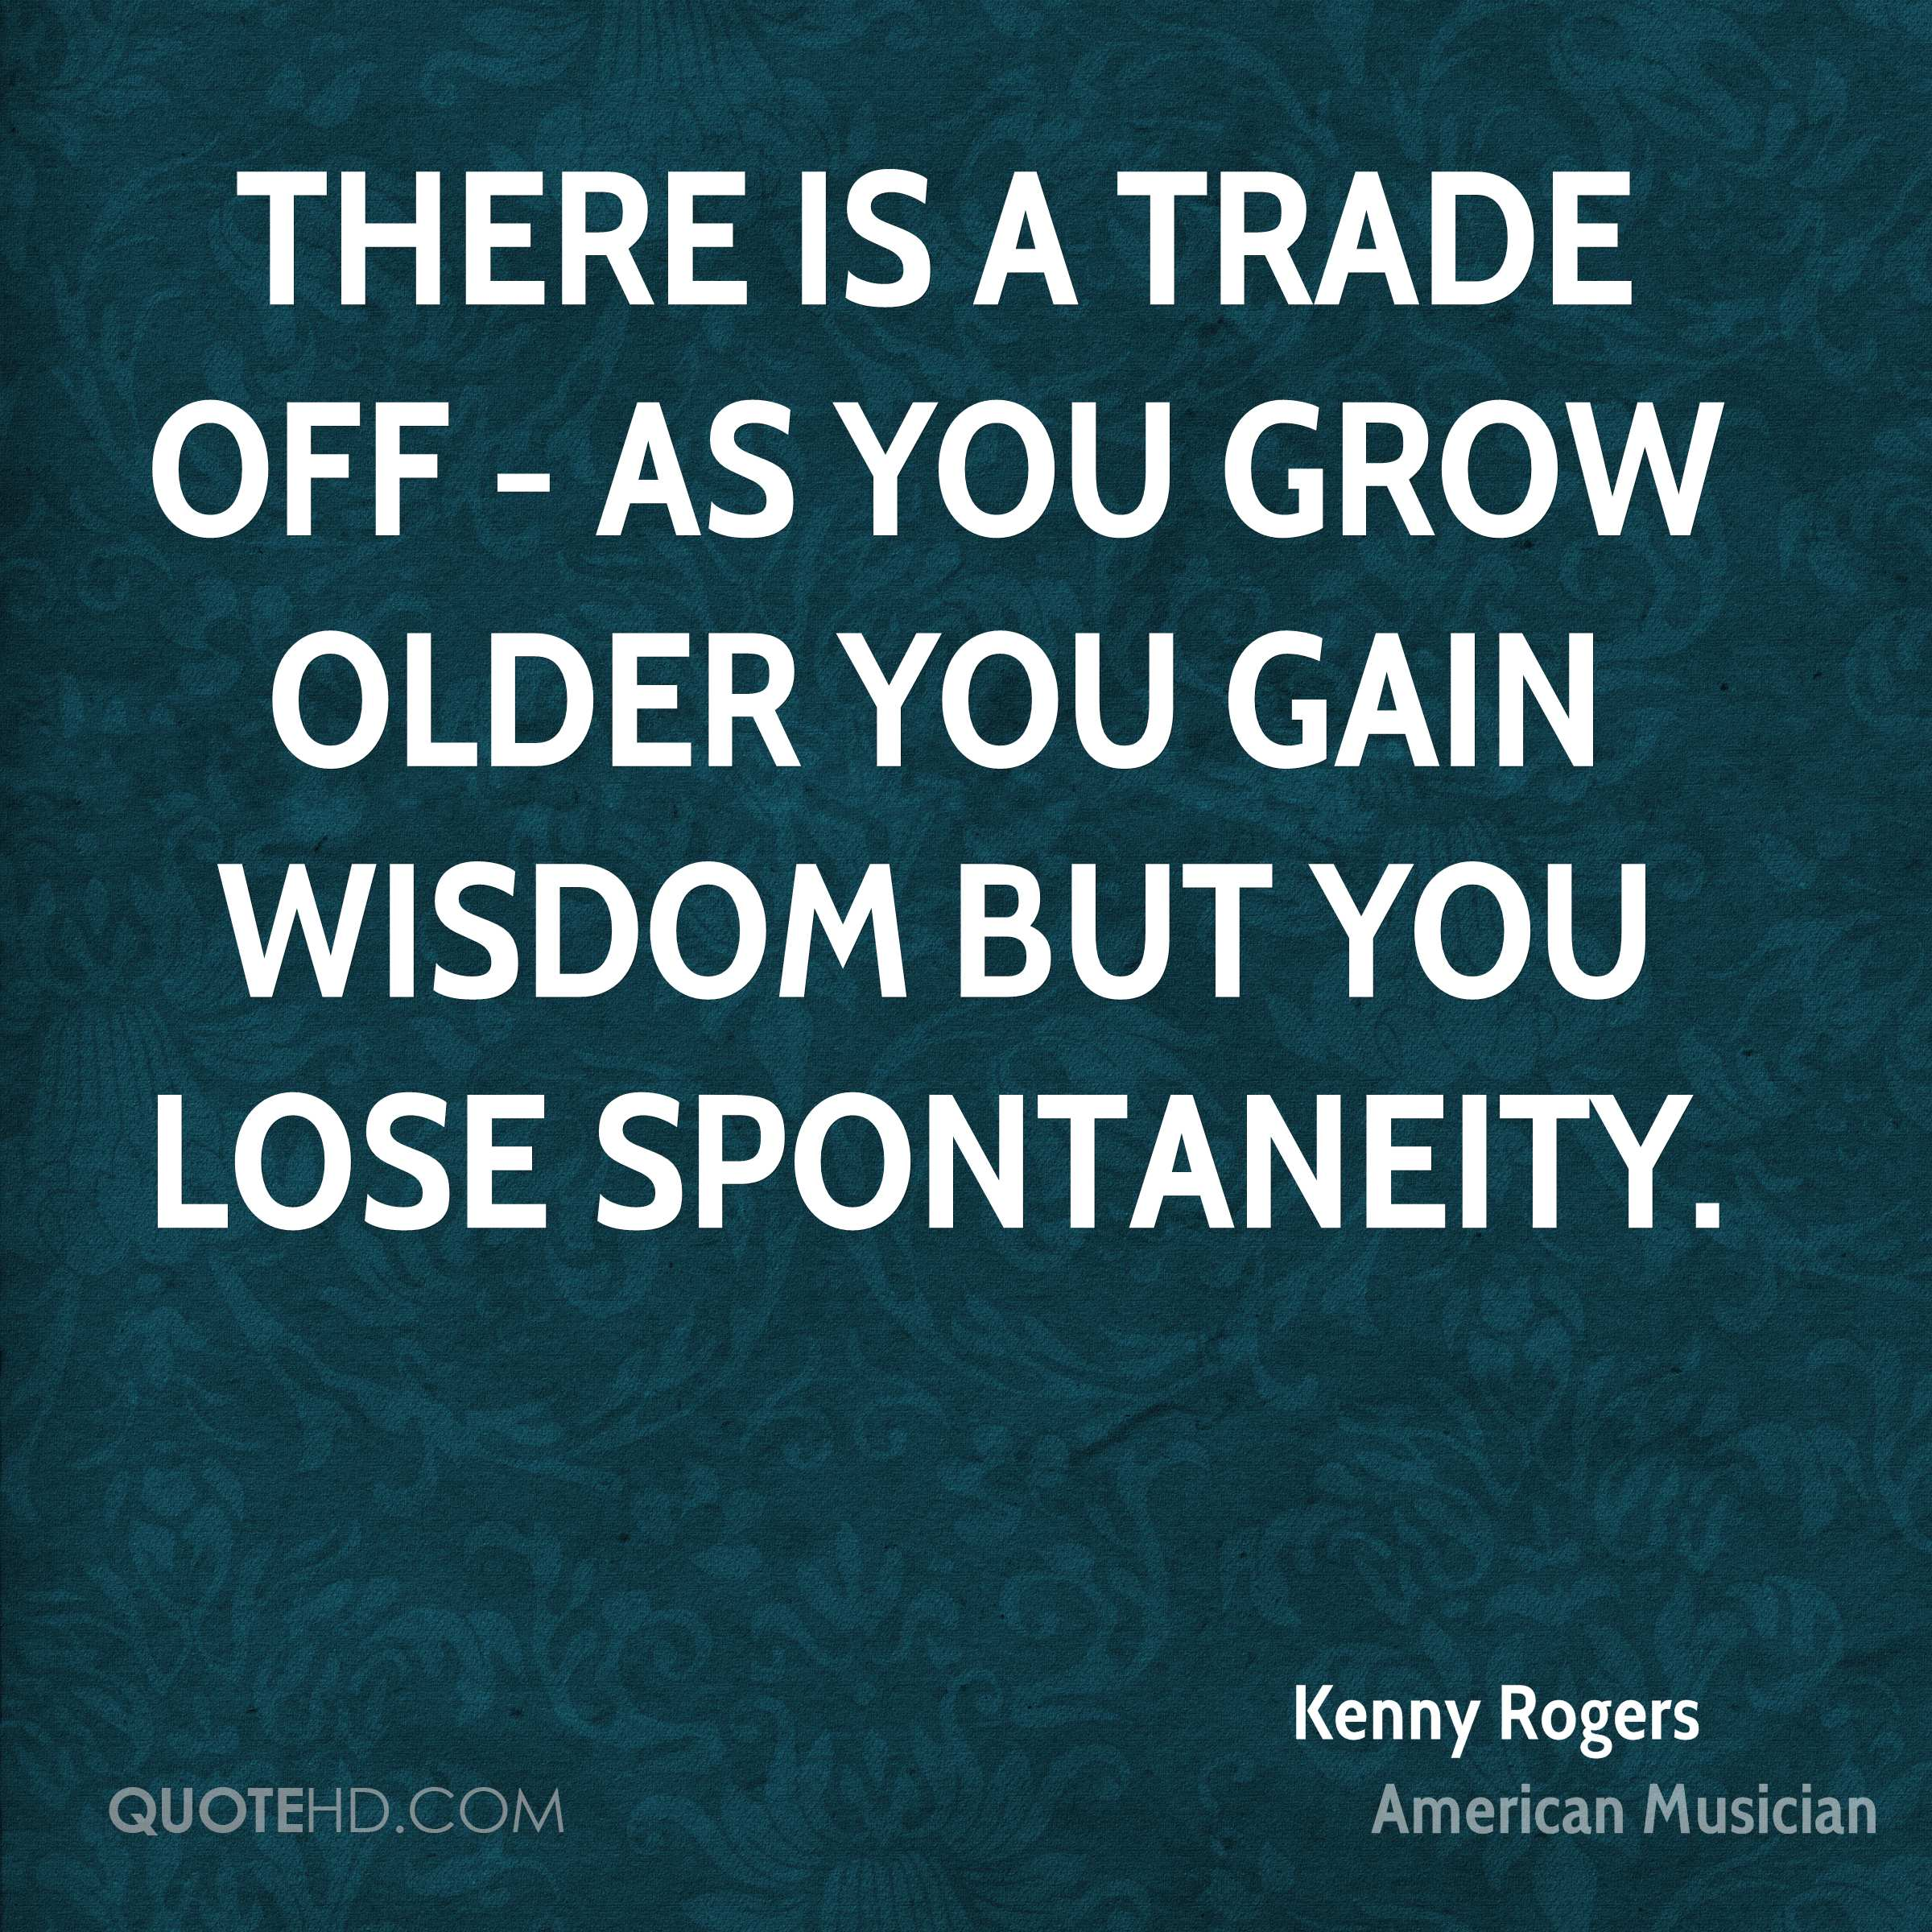 There is a trade off - as you grow older you gain wisdom but you lose spontaneity.